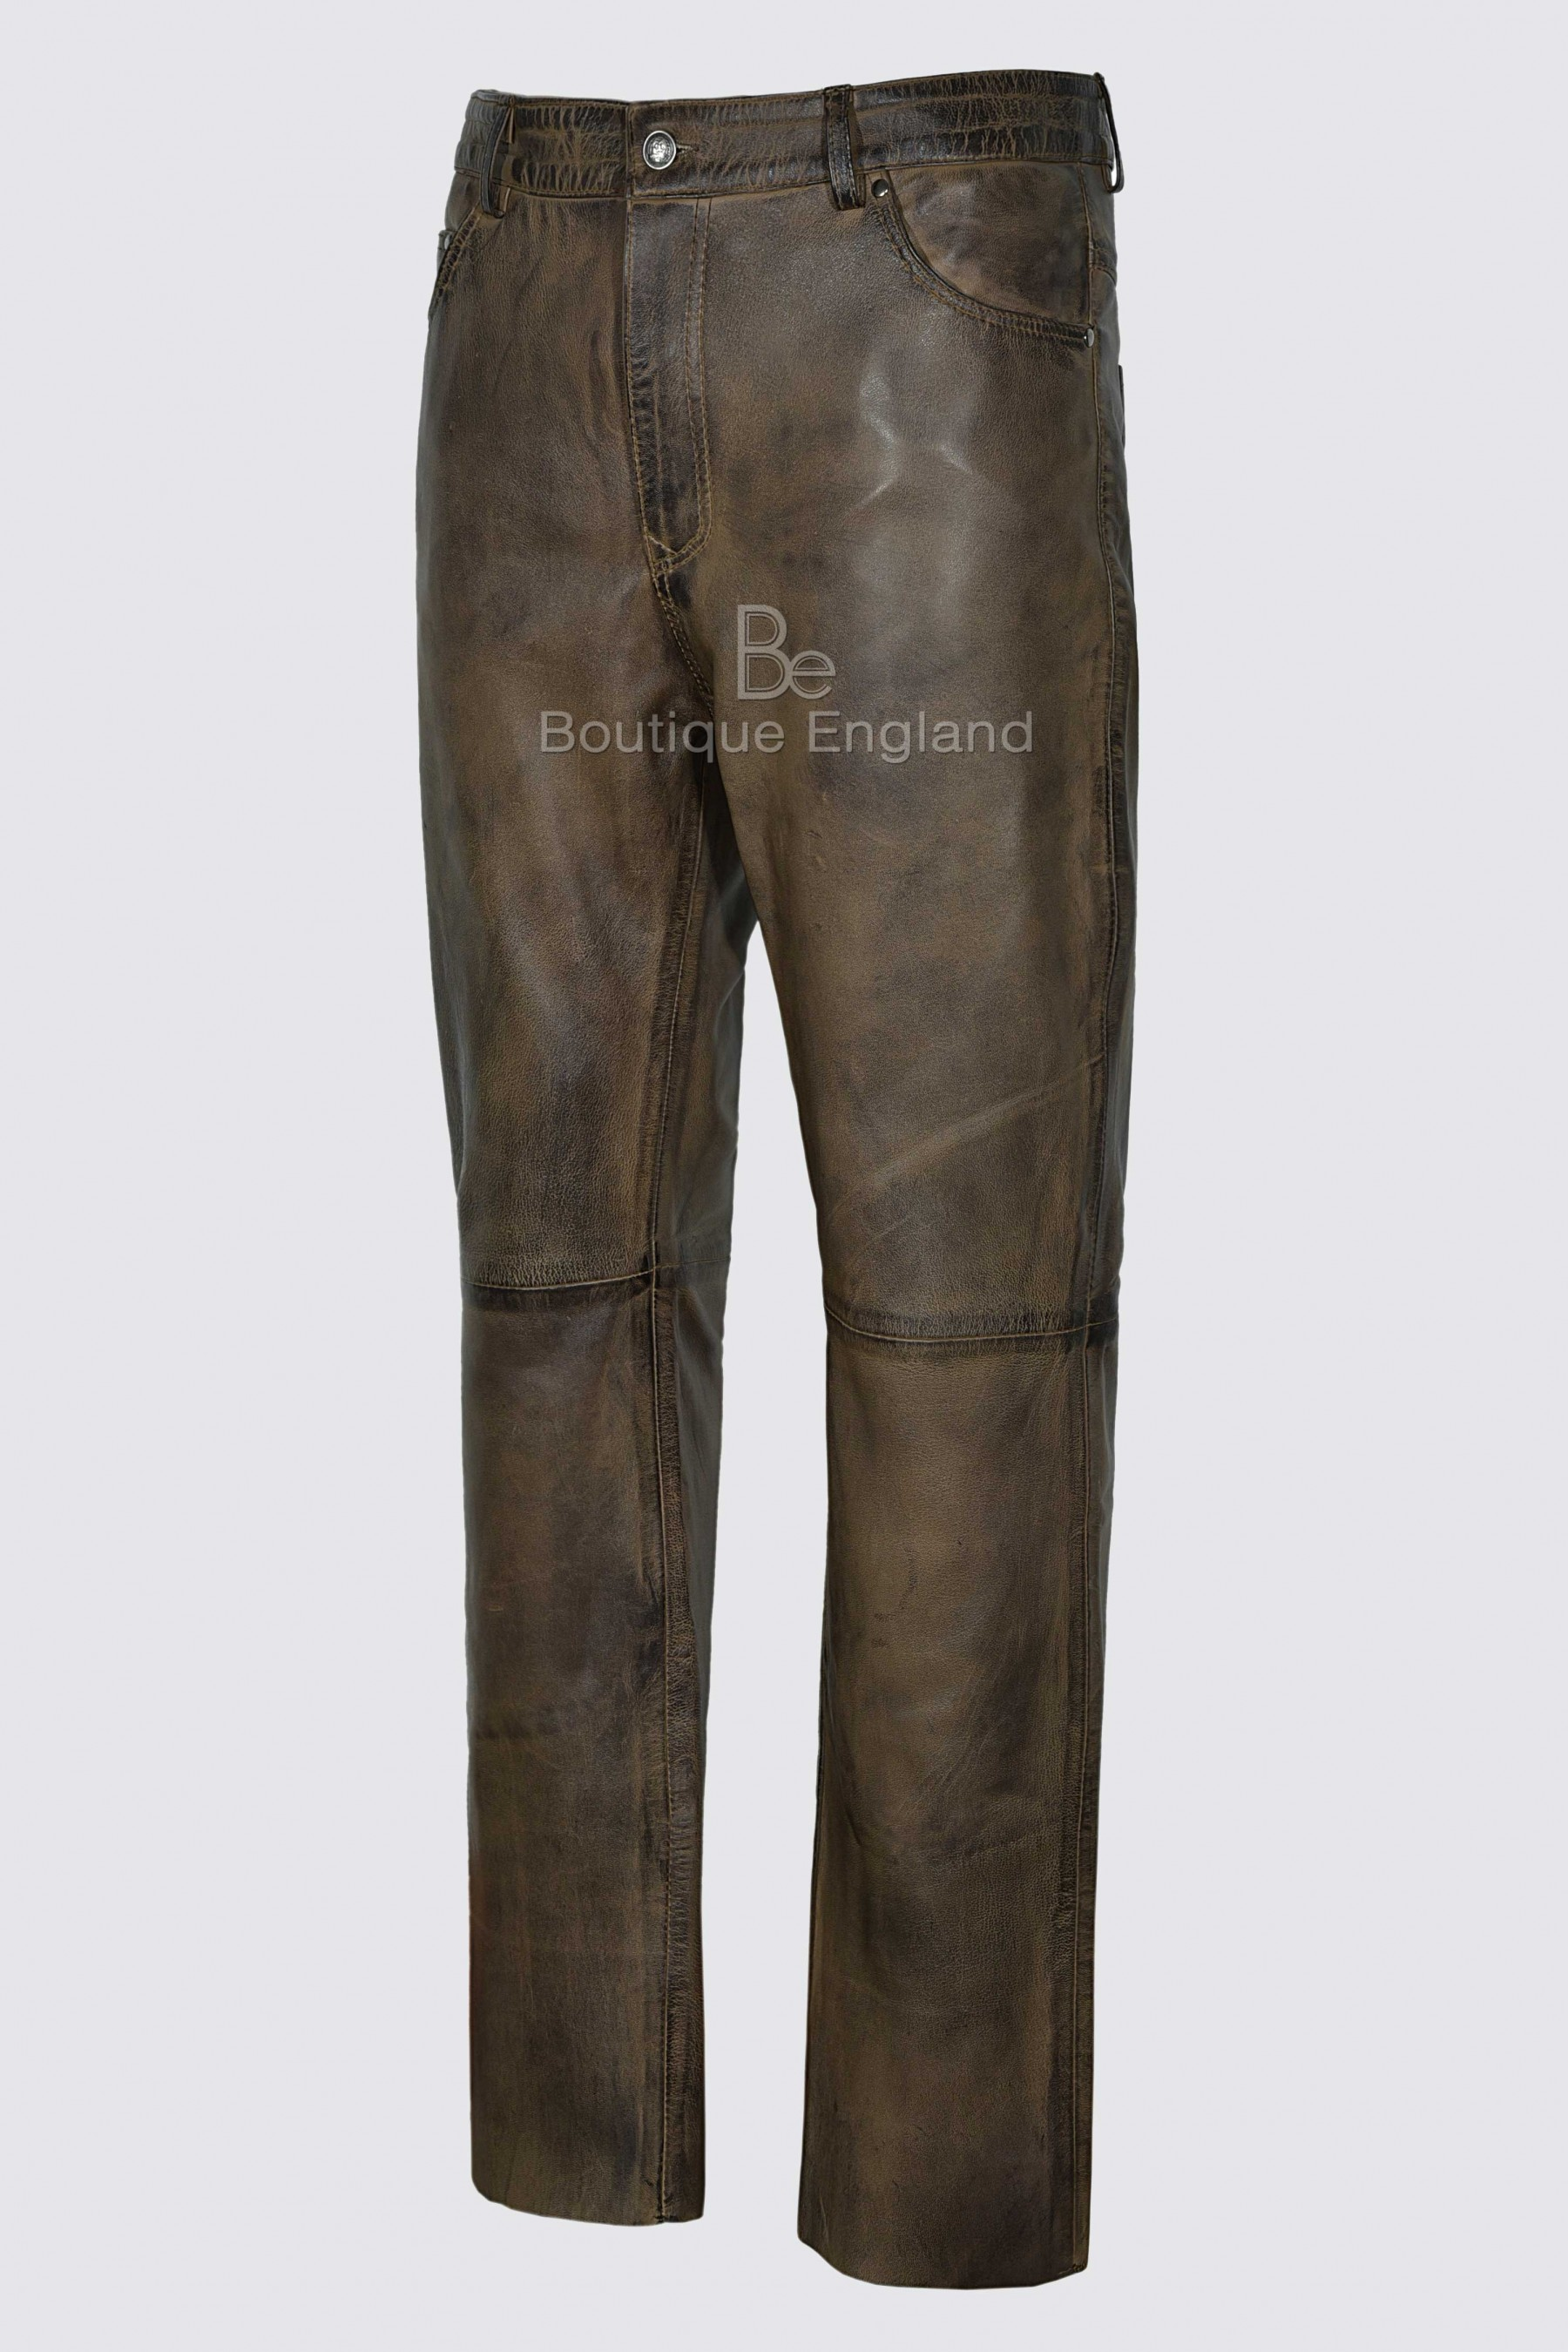 Mens Jeans Dirty Brown Waxed Real Leather Motorcycle